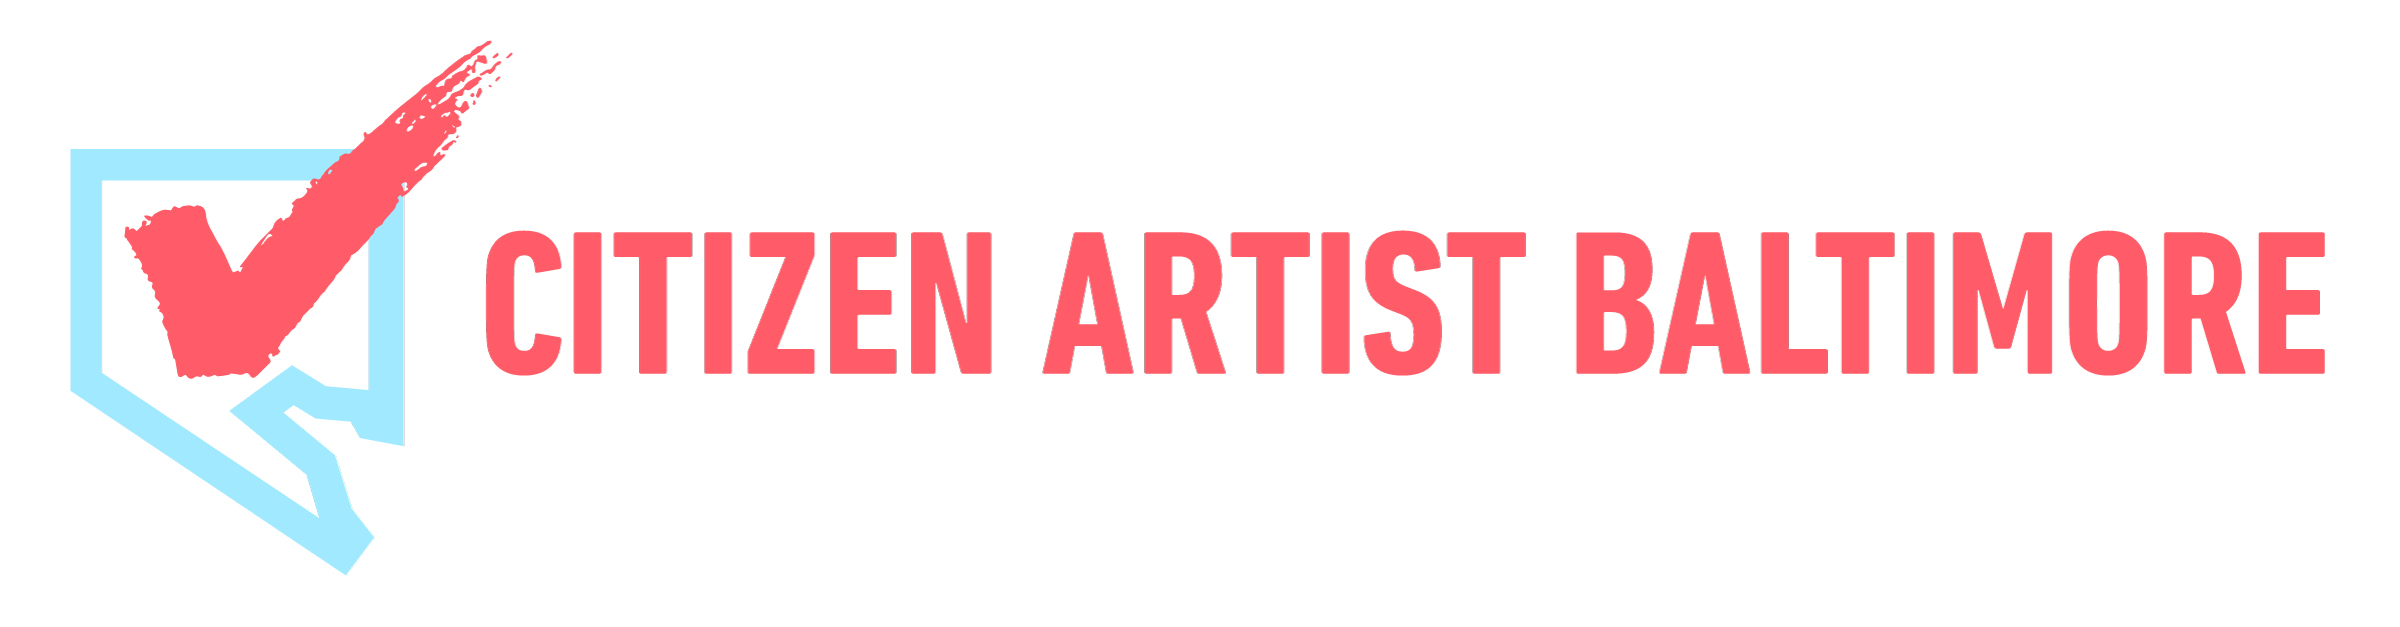 CitizenArtist-logo-horizontal